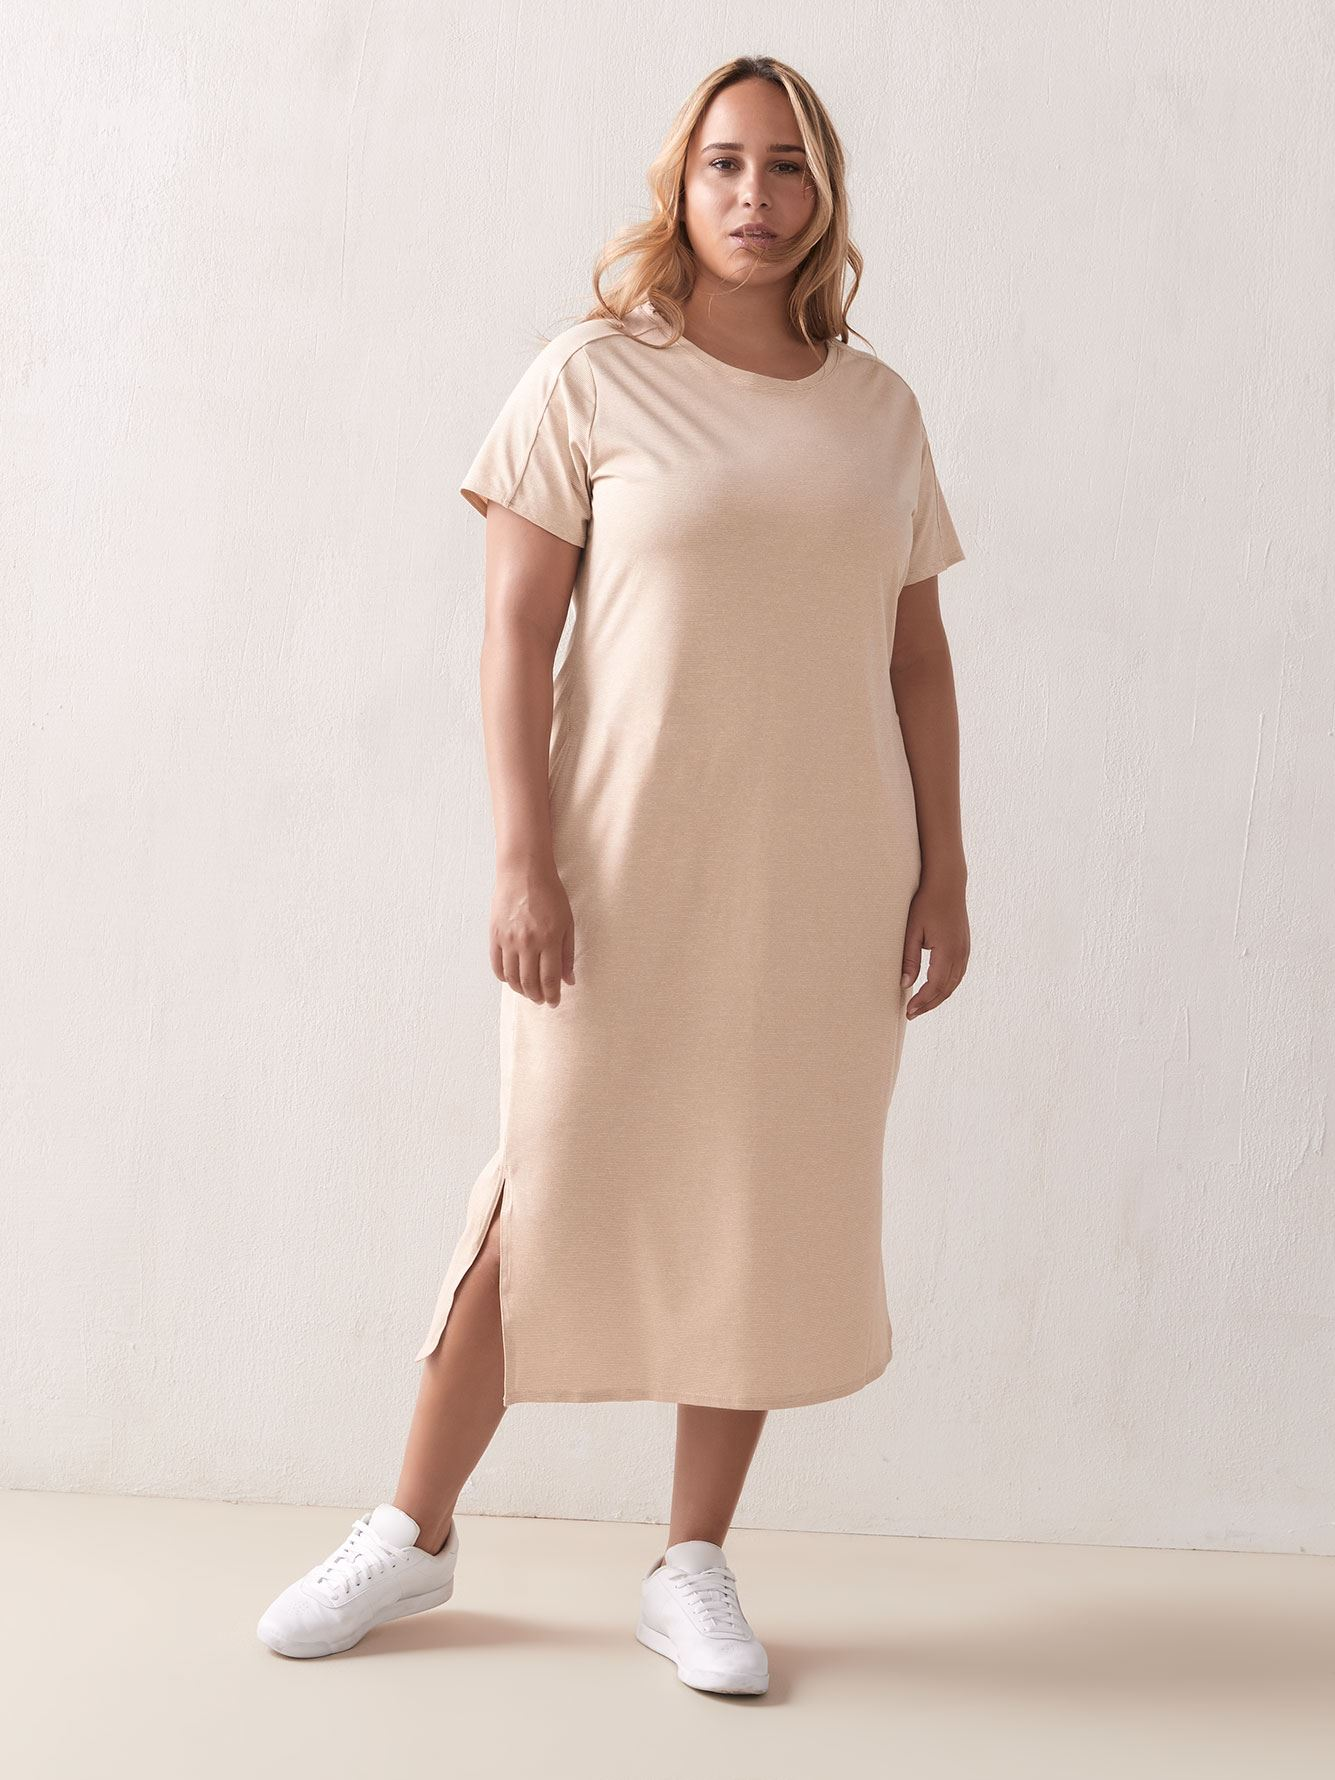 Firwood Camp T-Shirt Dress - Columbia